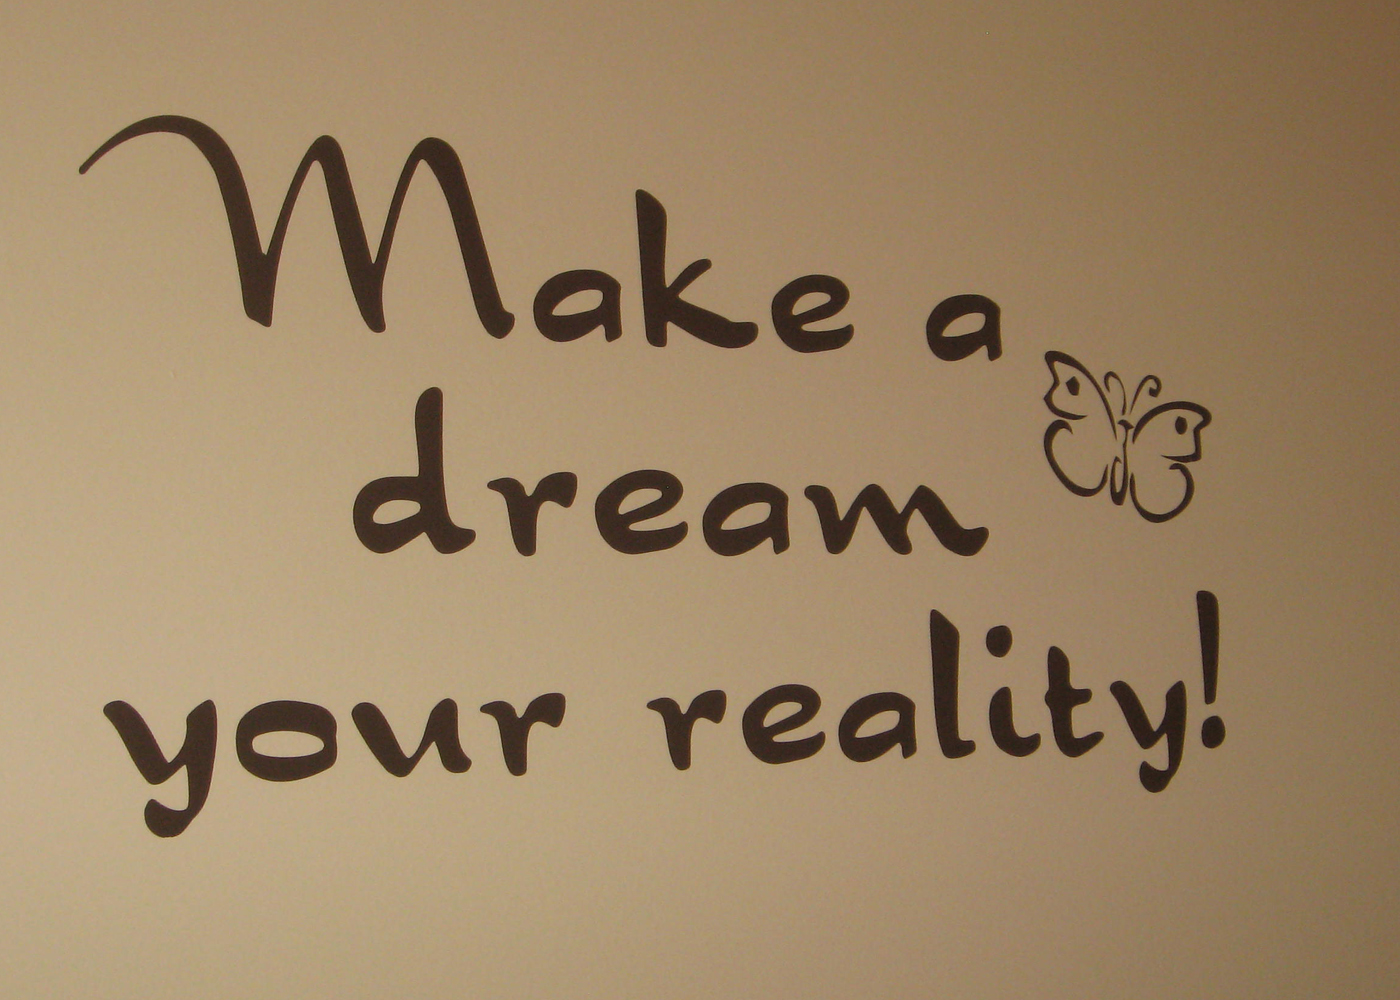 make-a-dream-wall-sticker-inspirational-quote.jpg